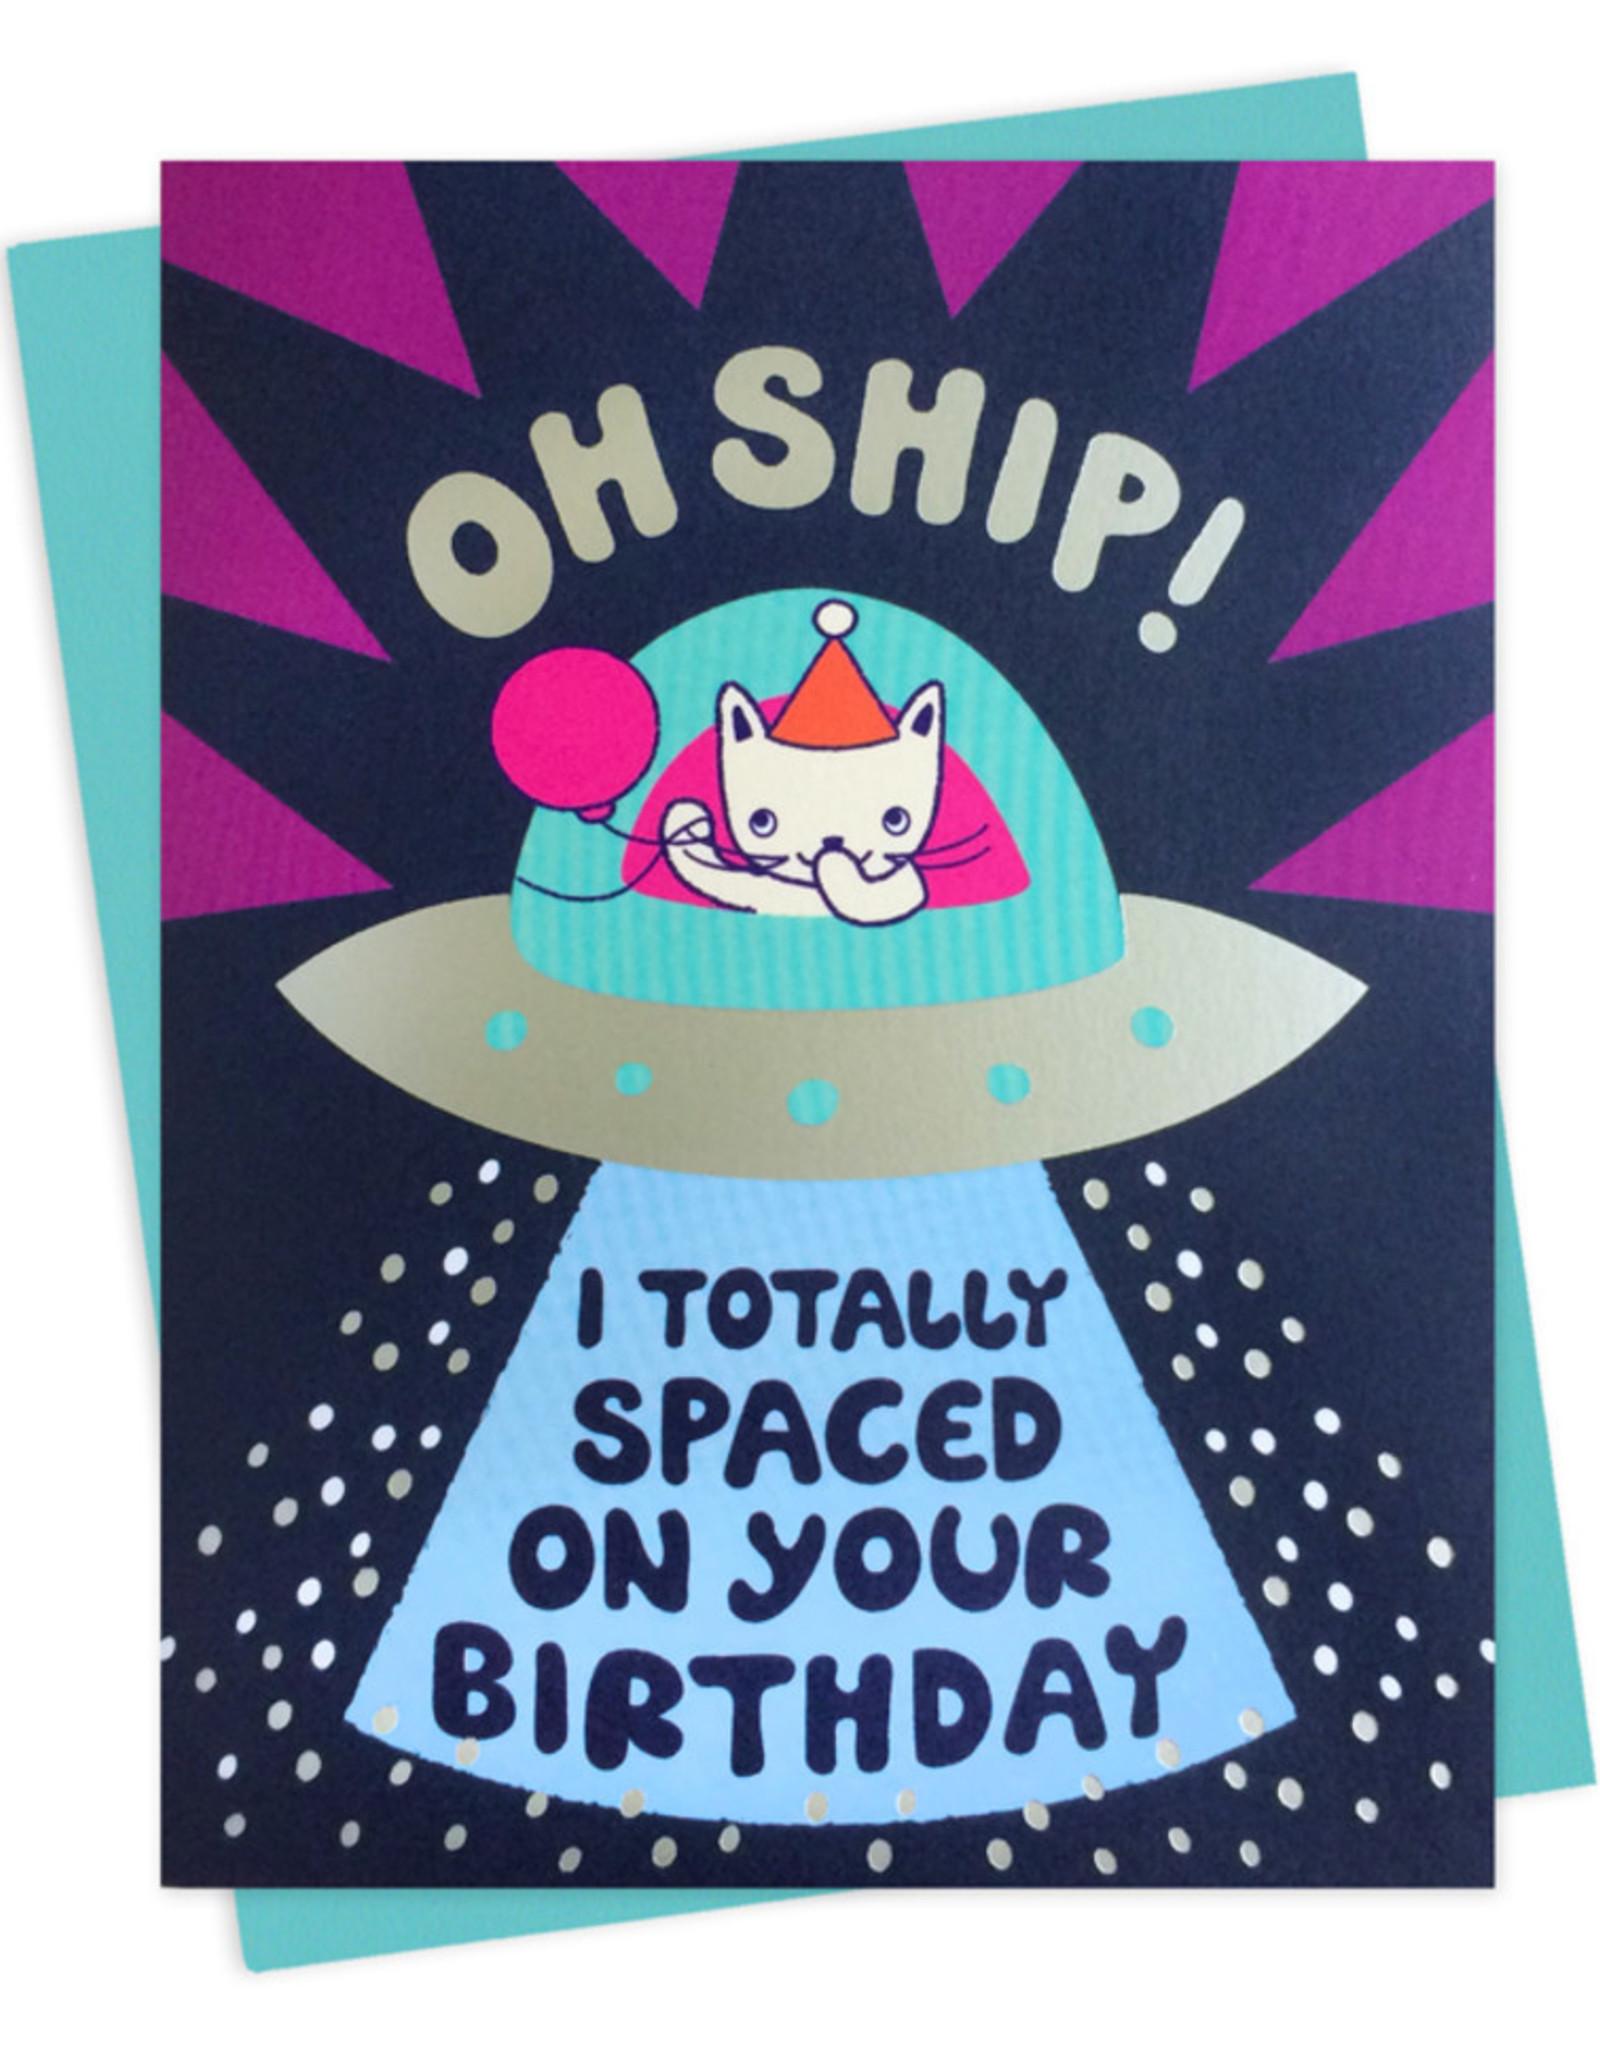 Night Owl Paper Goods Greeting Cards by Night Owl Paper Goods